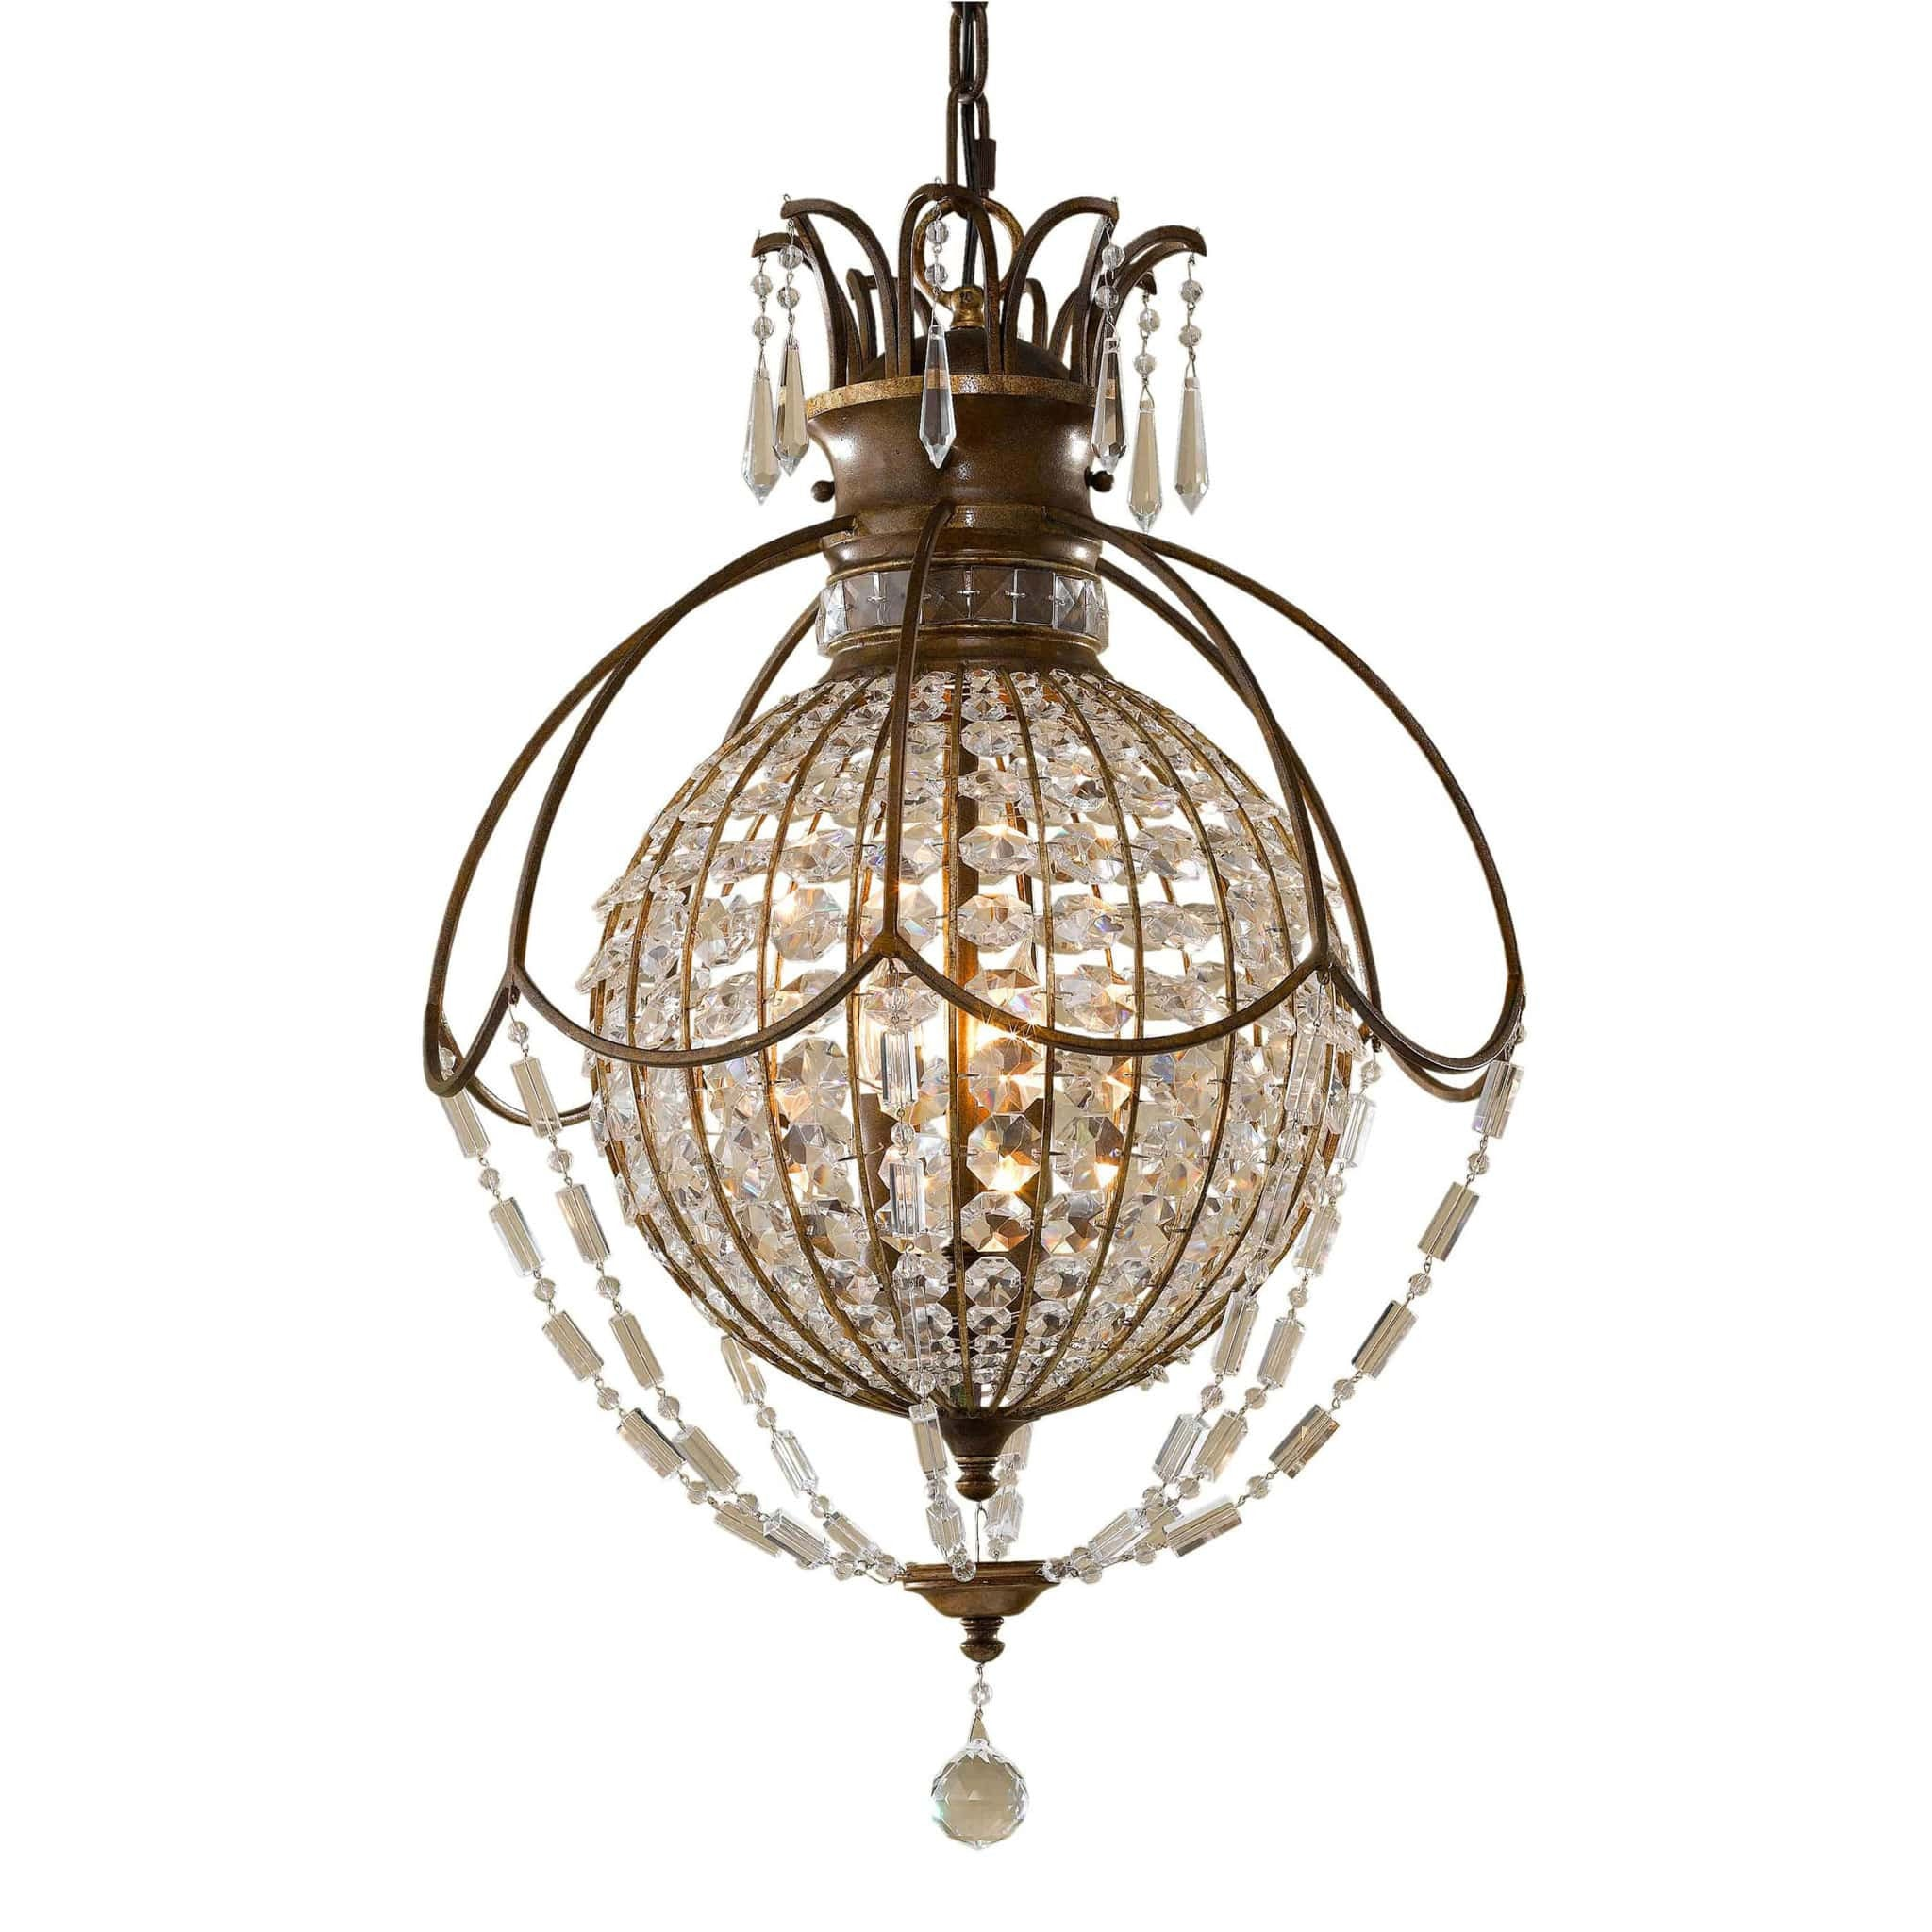 Feiss bellini 3 light bronze ball crystal chandelier chandelier feiss bellini 3 light bronze ball crystal chandelier febellini3 mozeypictures Image collections